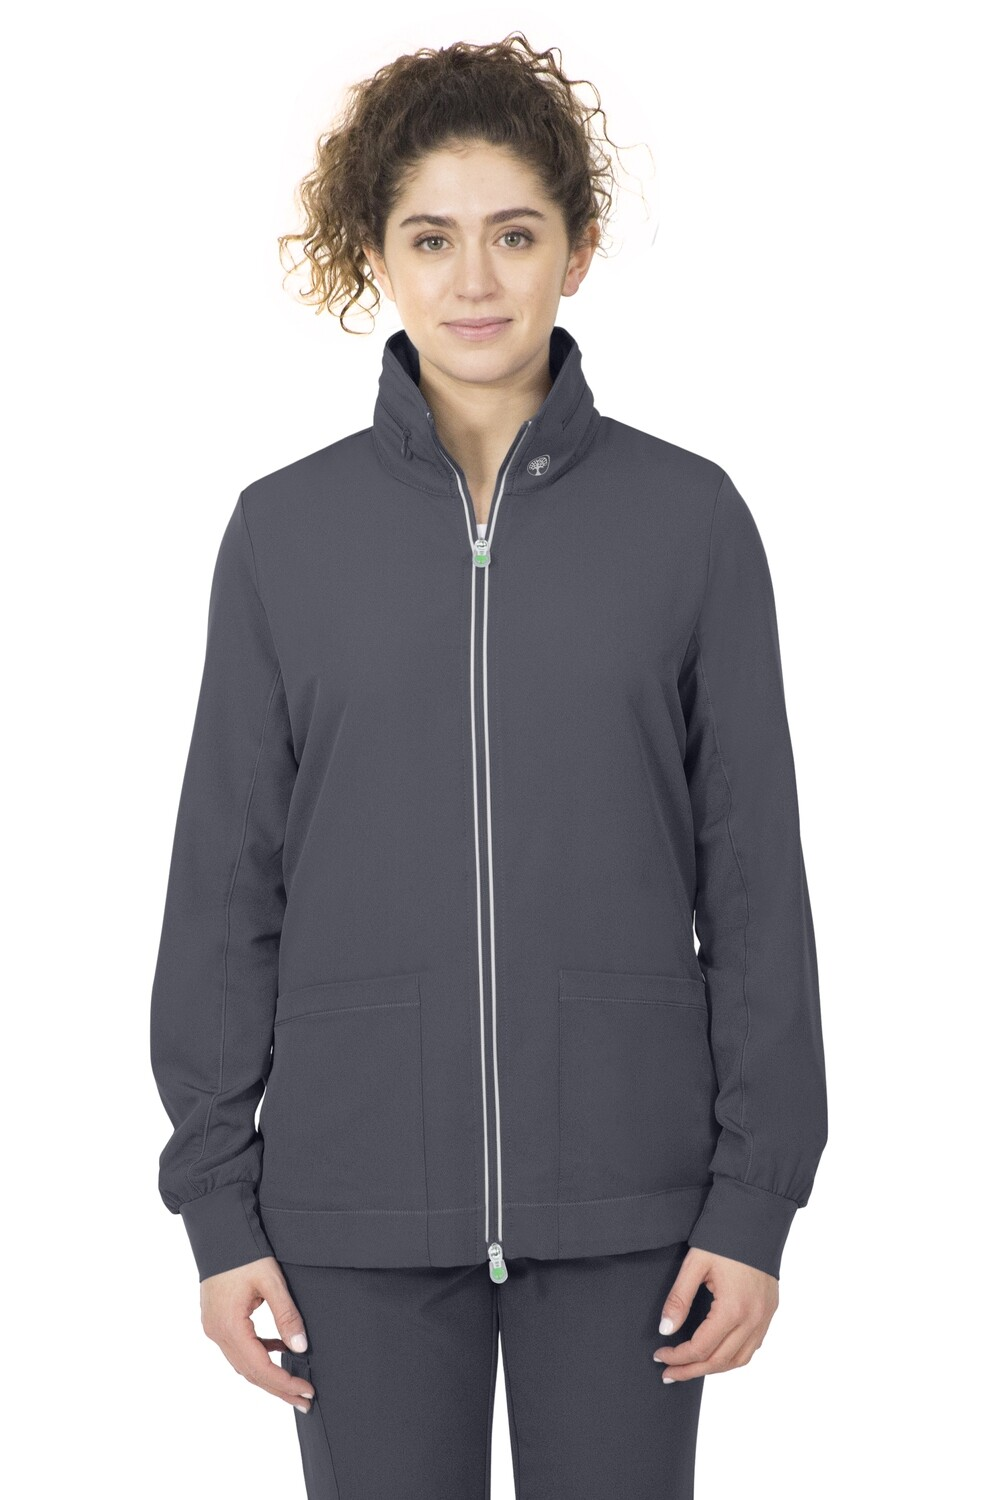 5065 CARRIE JACKET - PL 3XL PEWTER